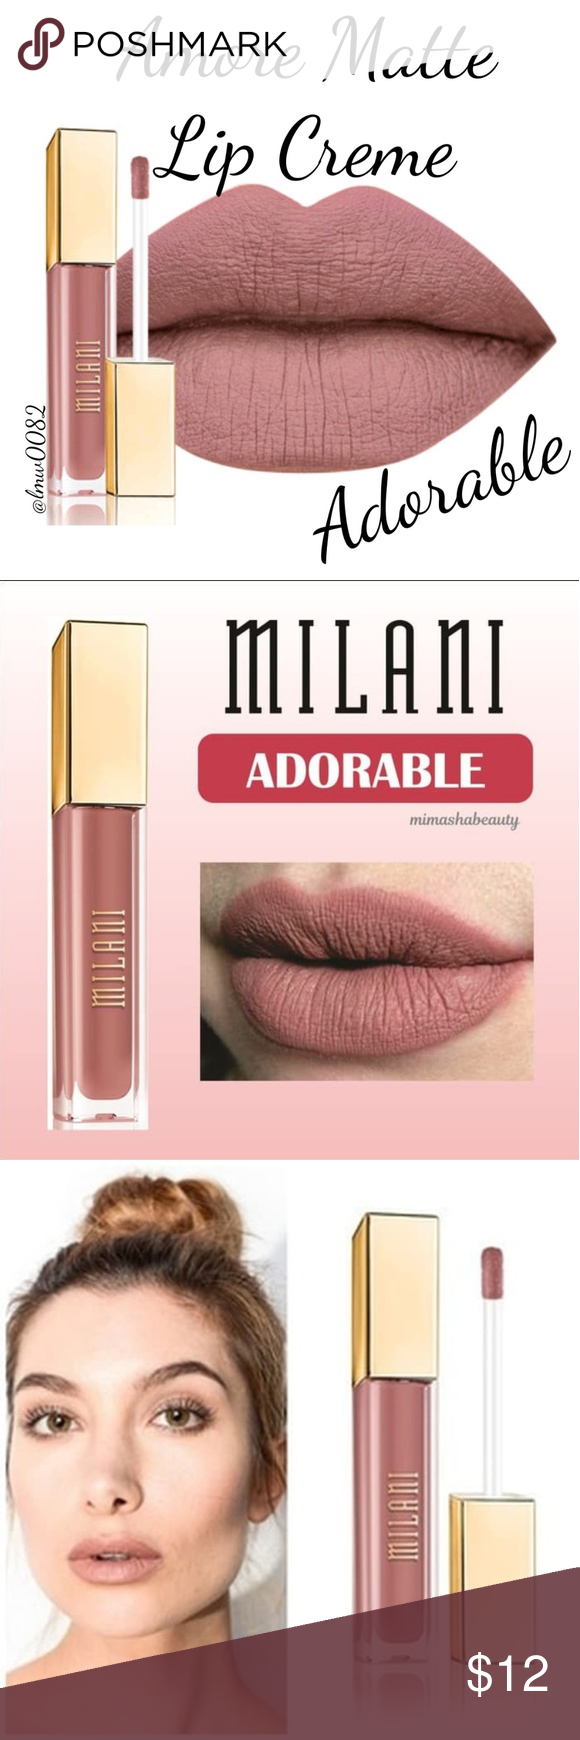 Milani Amore Matte Lip Creme Adorable AMORE MATTE LIP CRÈME  It's time to put your lipsticks on notice. The Amore Matte Lip Crème has arrived. This revolutionary, highly saturated liquid-to-matte formula dries to a soft, velvety finish for fuller-looking lips. Its double-sided, flexible plush applicator hugs the contours of lips, working to lock in bold, opaque color. Non-sticky, smooth and ready for all-night wear (up to 16 hours!) our Amore Matte Lip Crème is the ultimate transfer resistant ki